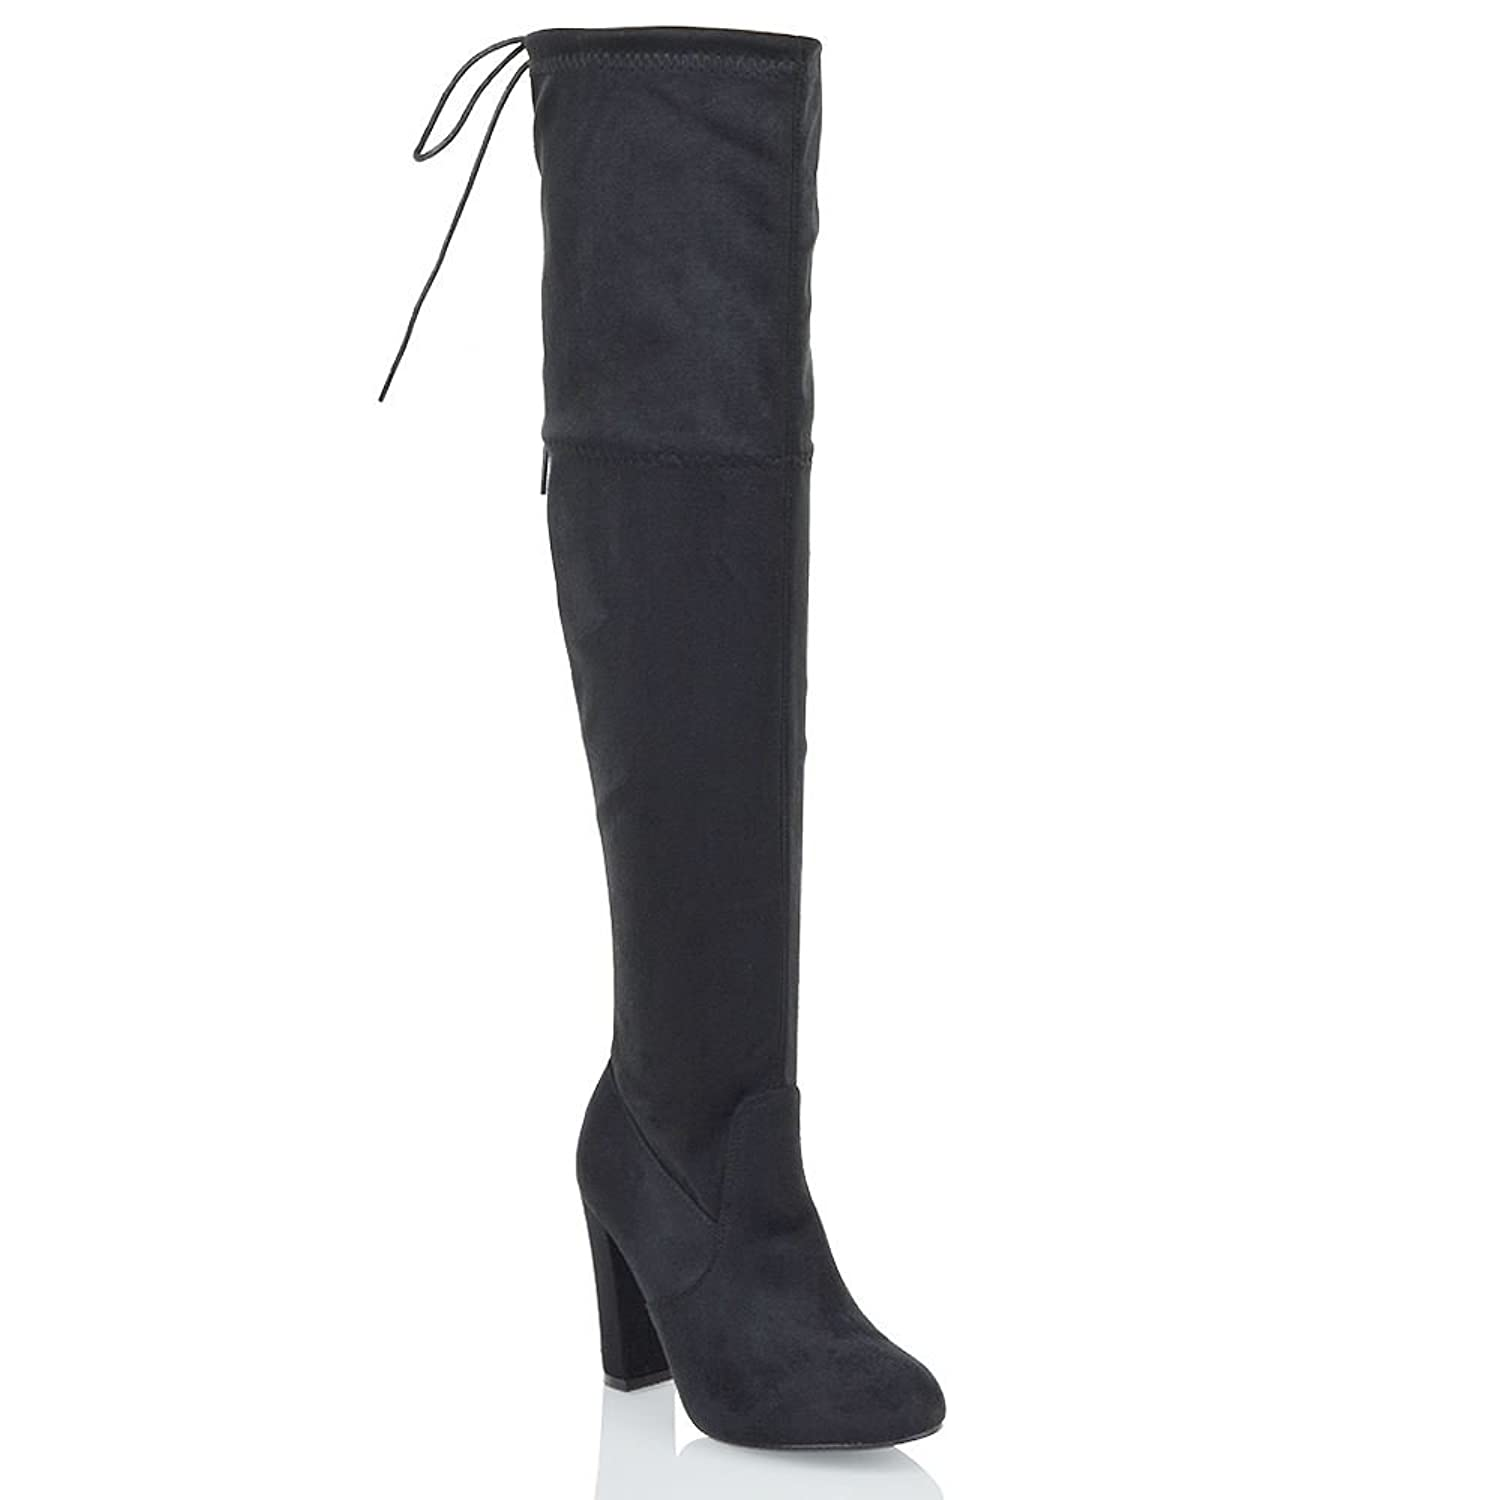 07caef6e3de2 ESSEX GLAM New Womens Thigh High Boots Ladies Over The Knee Stretch Evening  Block…